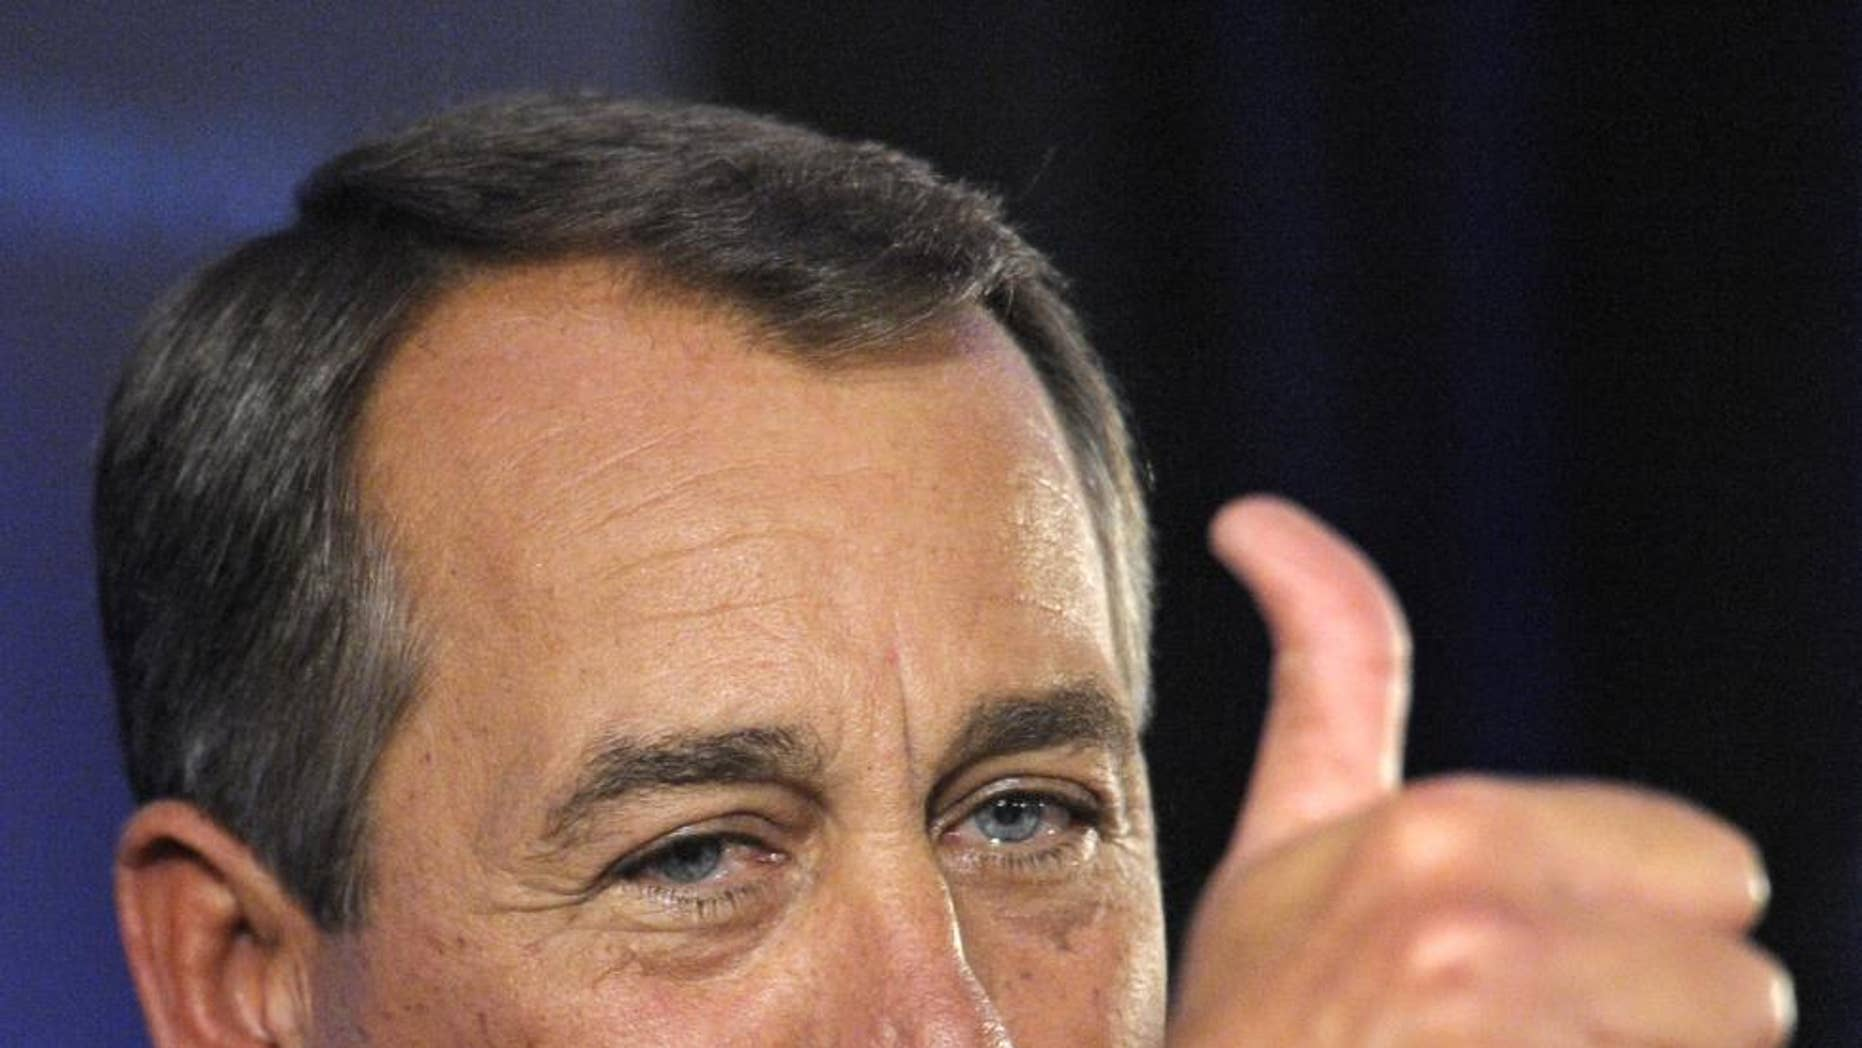 FILE - In this Nov. 2, 2010 file photo, House Republican leader John Boehner of Ohio celebrates the GOP's general election victory at the Grand Hyatt hotel in Washington. The Republicans' election wins left Boehner set to become speaker of the U.S. House. (AP Photo/Cliff Owen, File)